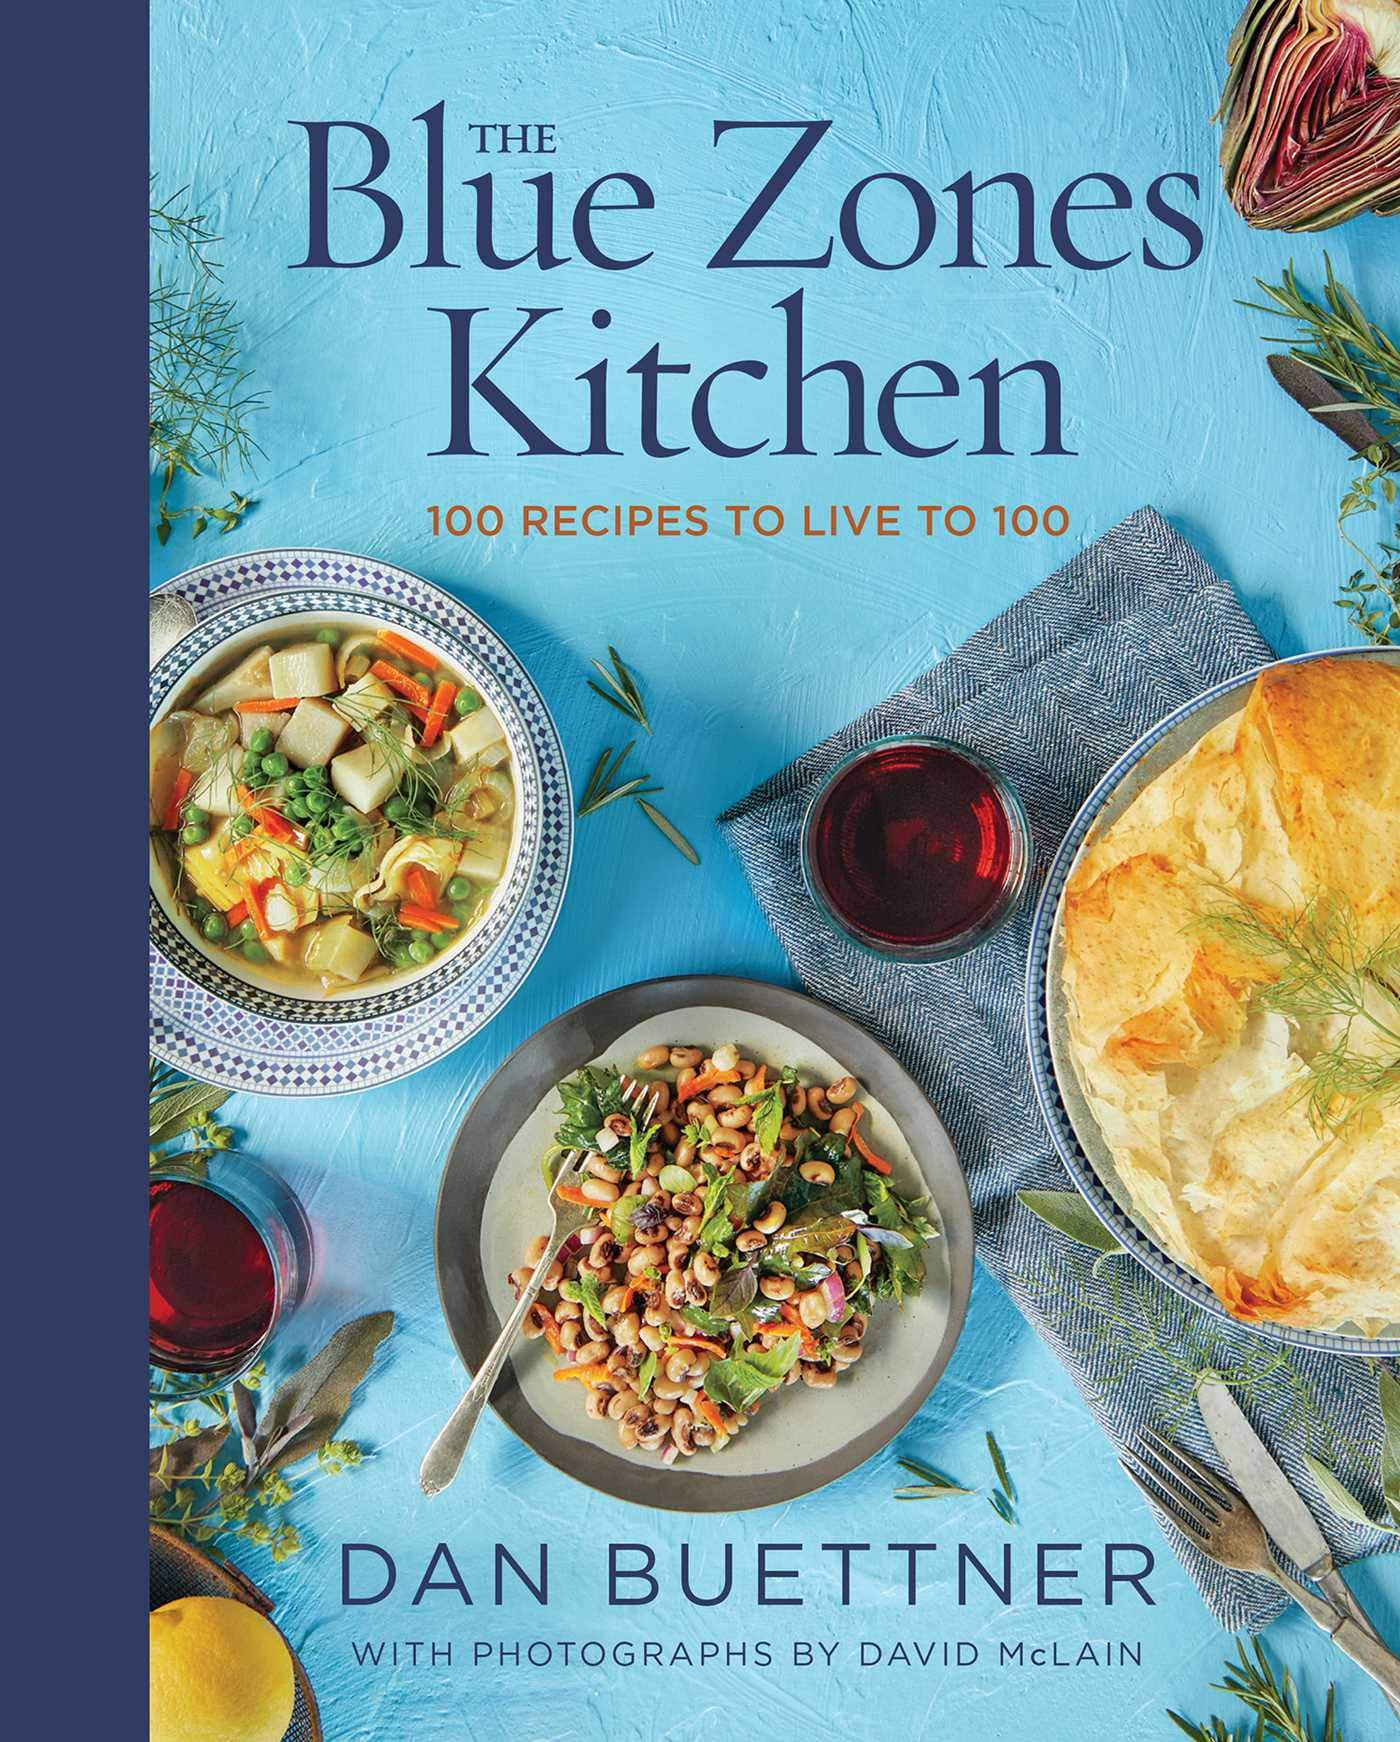 81enEB3 h1L - The Blue Zones Kitchen: 100 Recipes to Live to 100